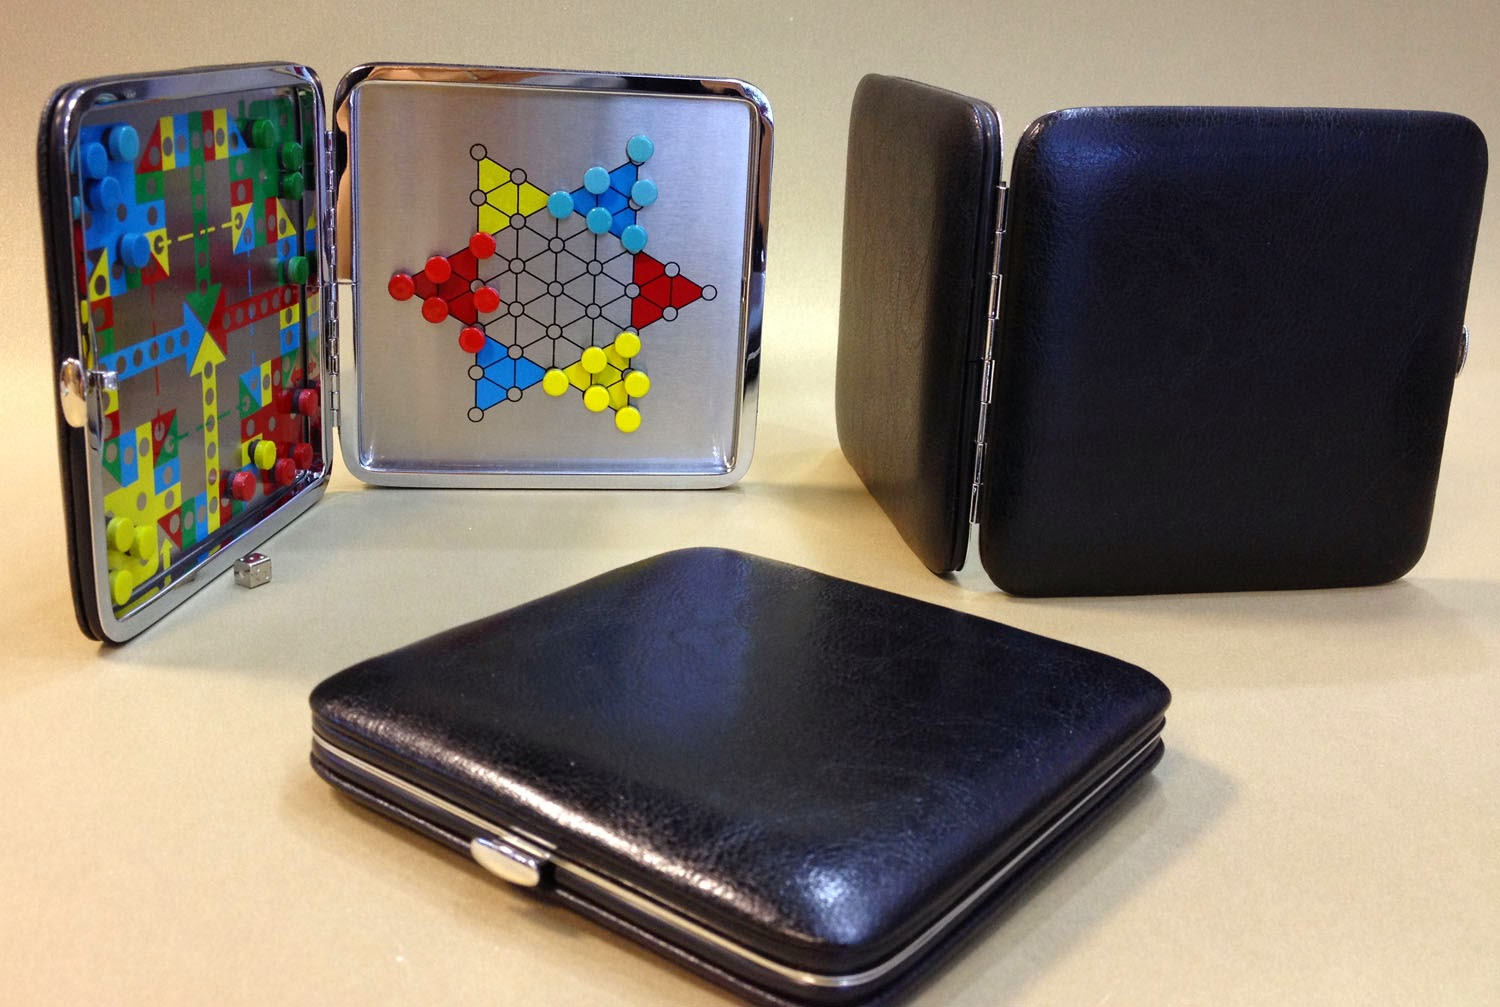 Game 2 in 1 Leather ,Portable ,suitable for travel ,game set lover, practical